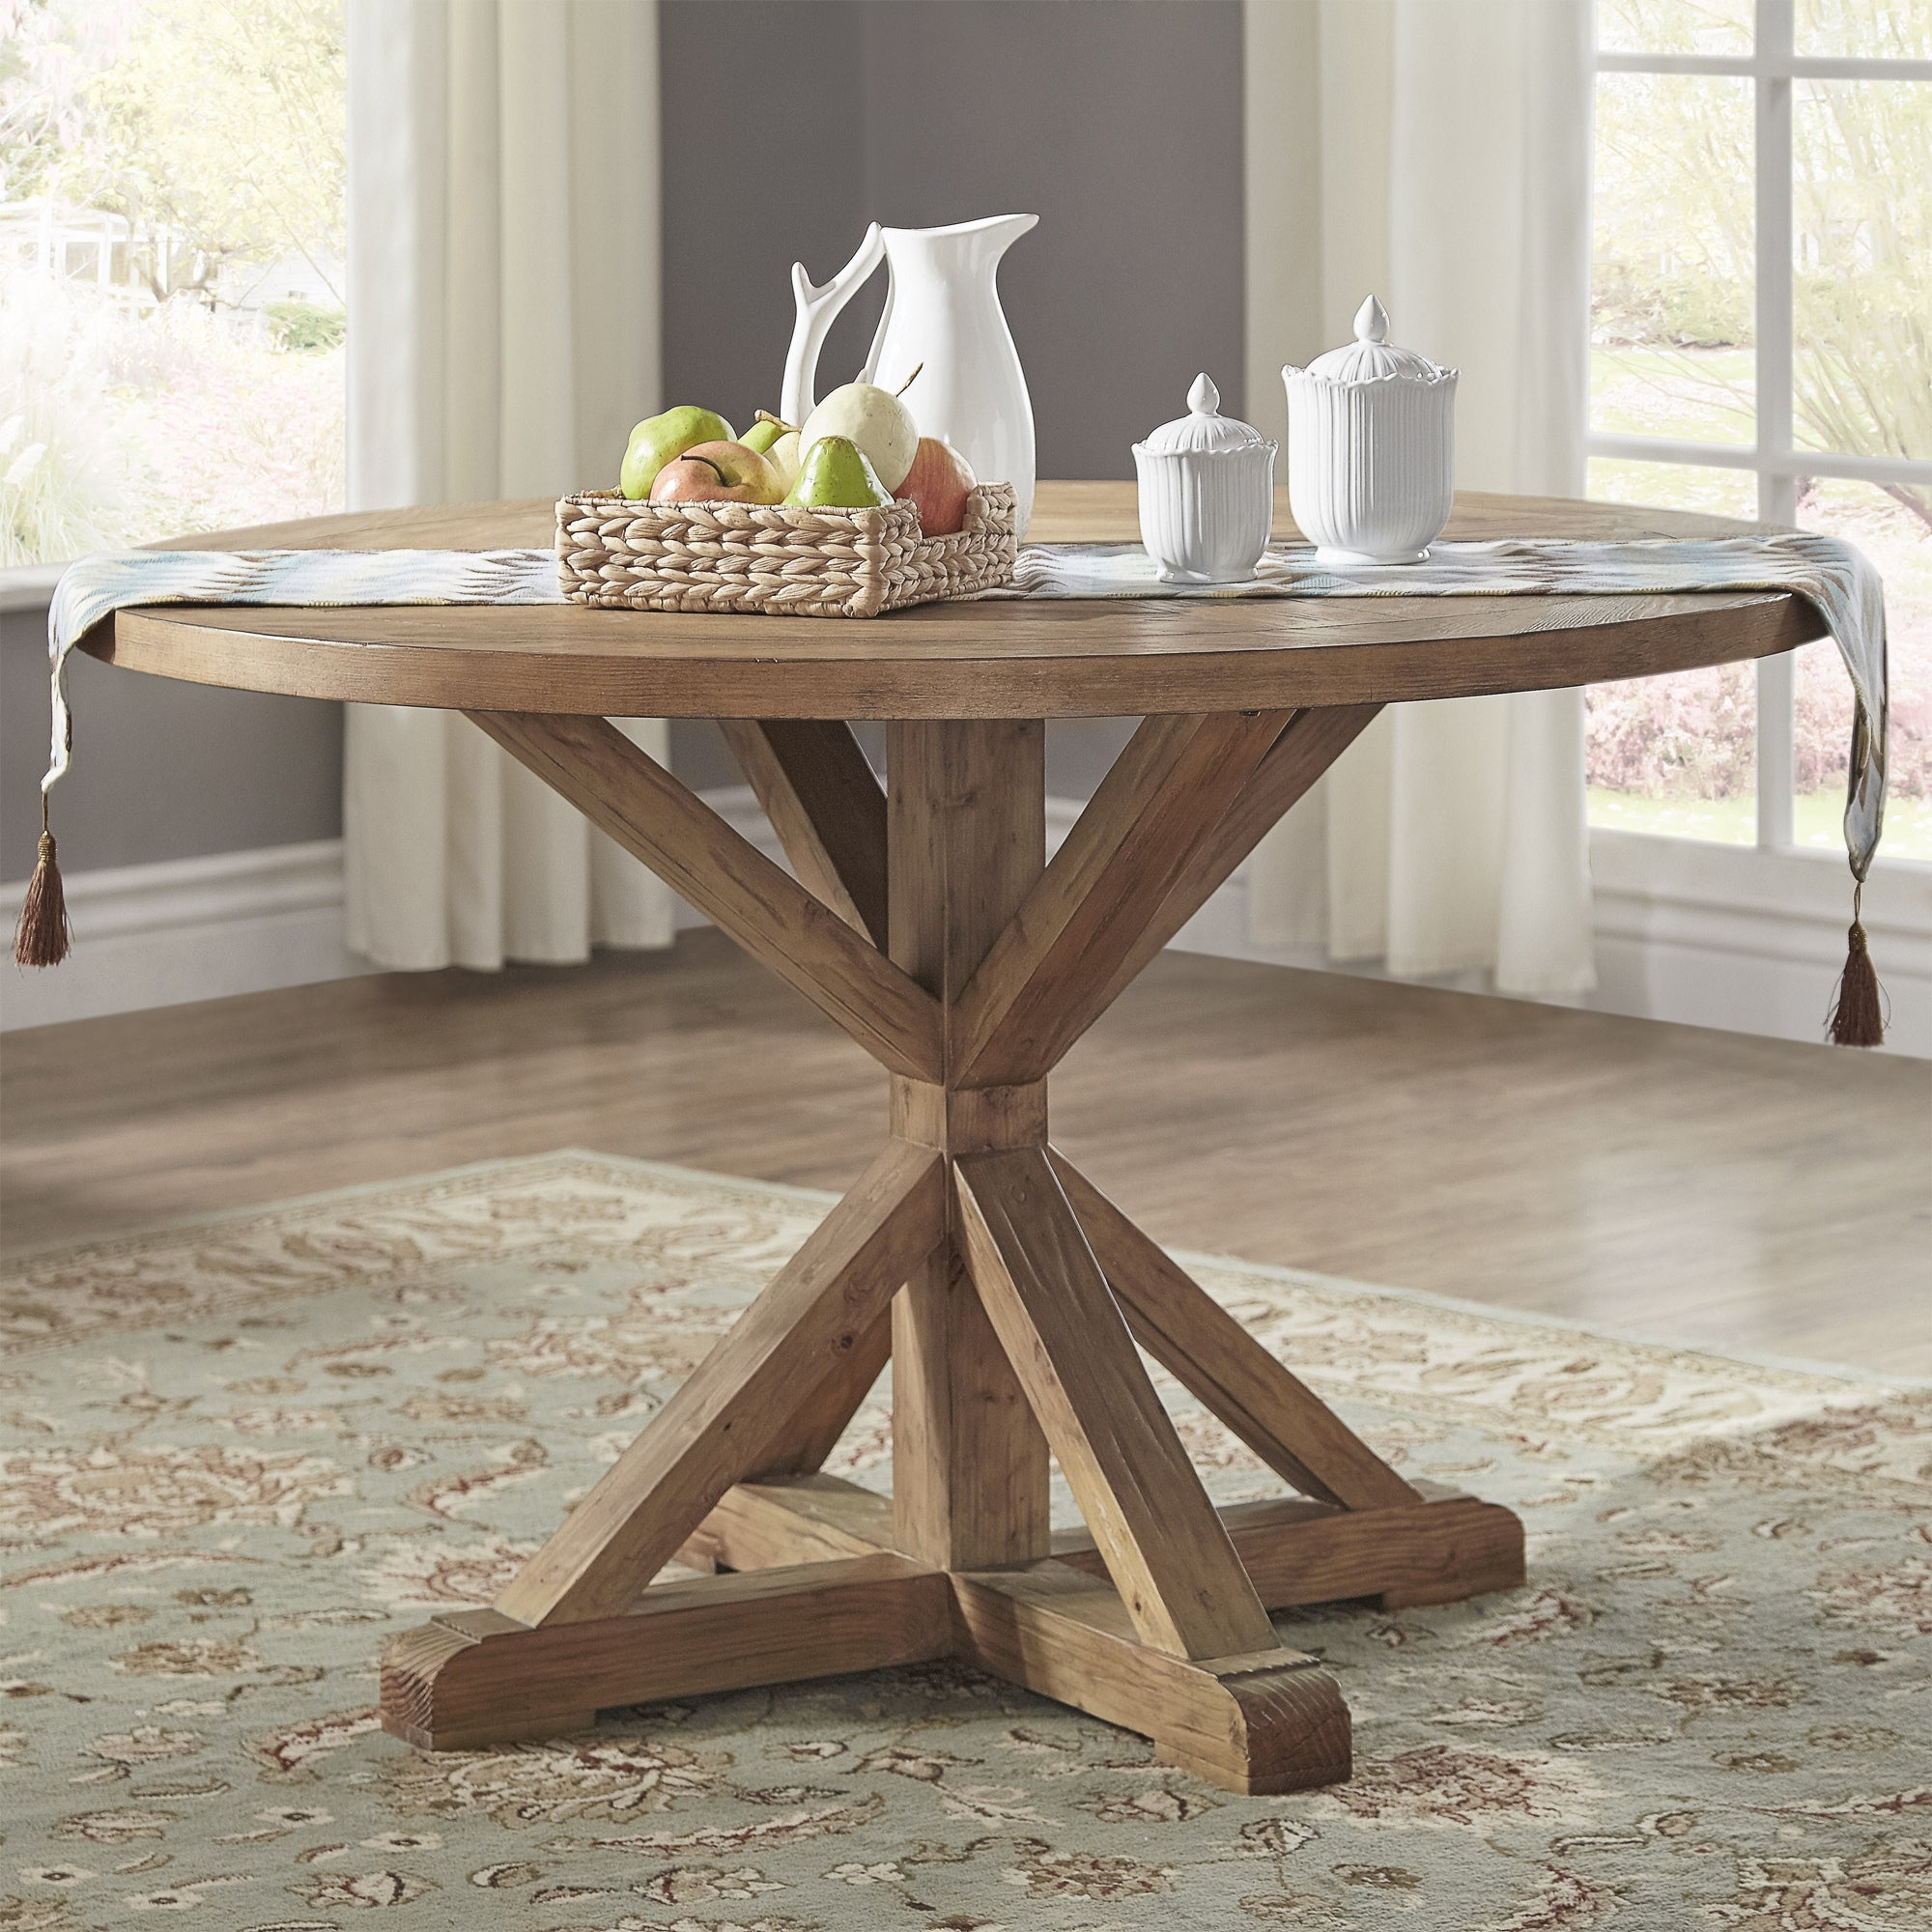 Benchwright Rustic X Base 48 Inch Round Dining Table Setinspire Q Artisan Inside Recent Benchwright Round Pedestal Dining Tables (View 2 of 25)